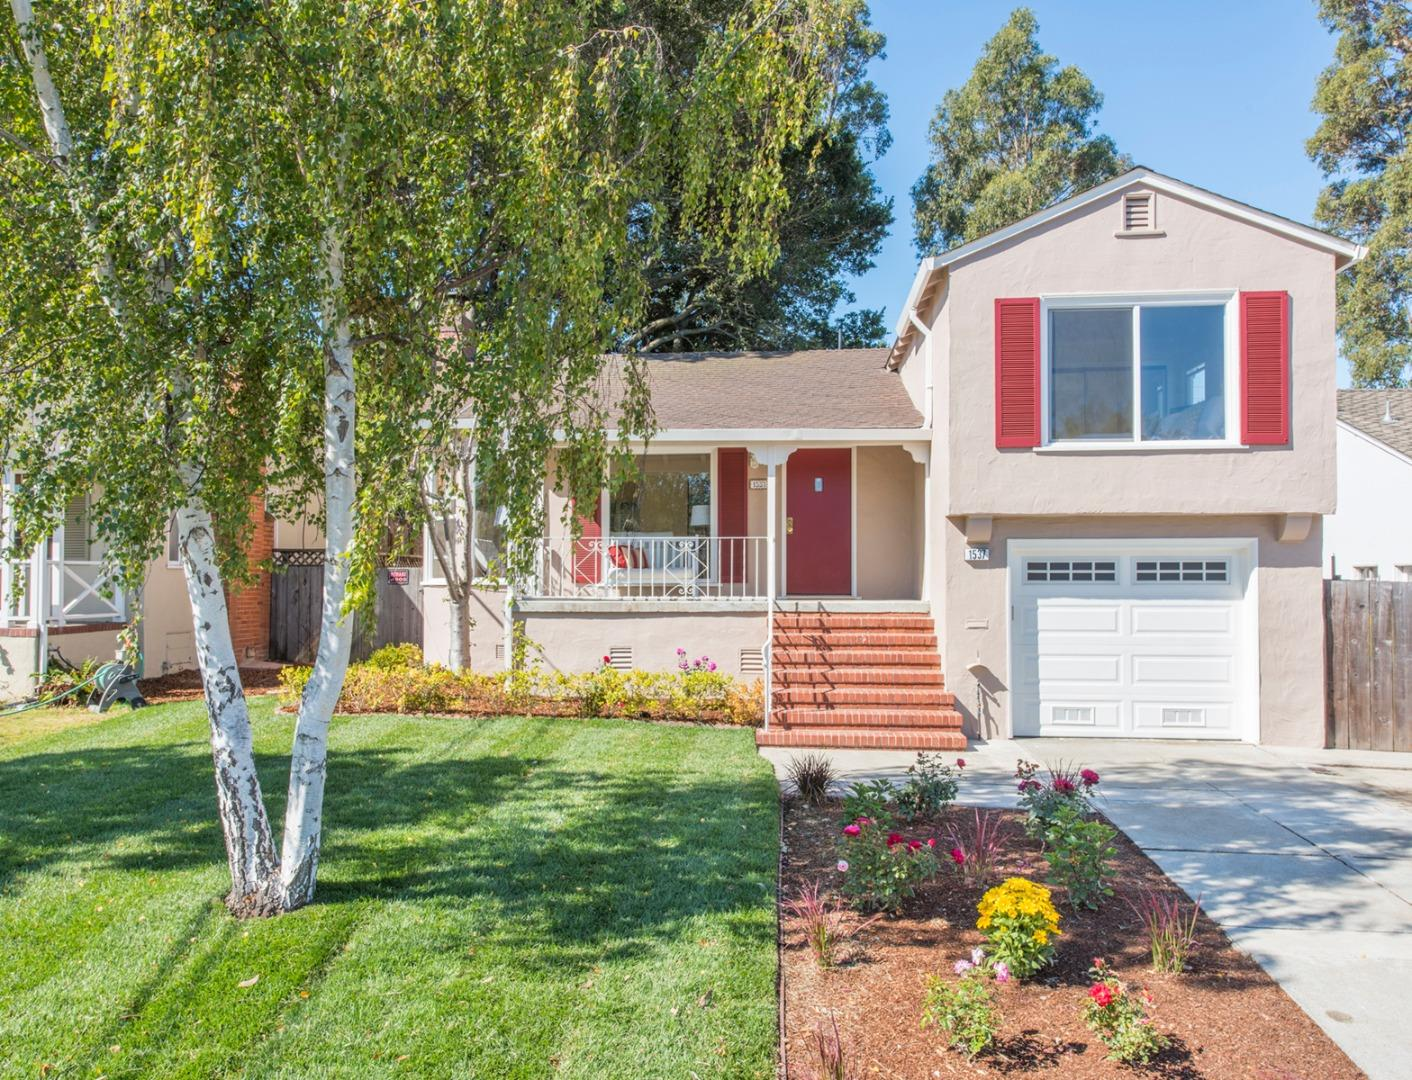 Single Family Home for Rent at 1537 Westmoor Road Burlingame, California 94010 United States